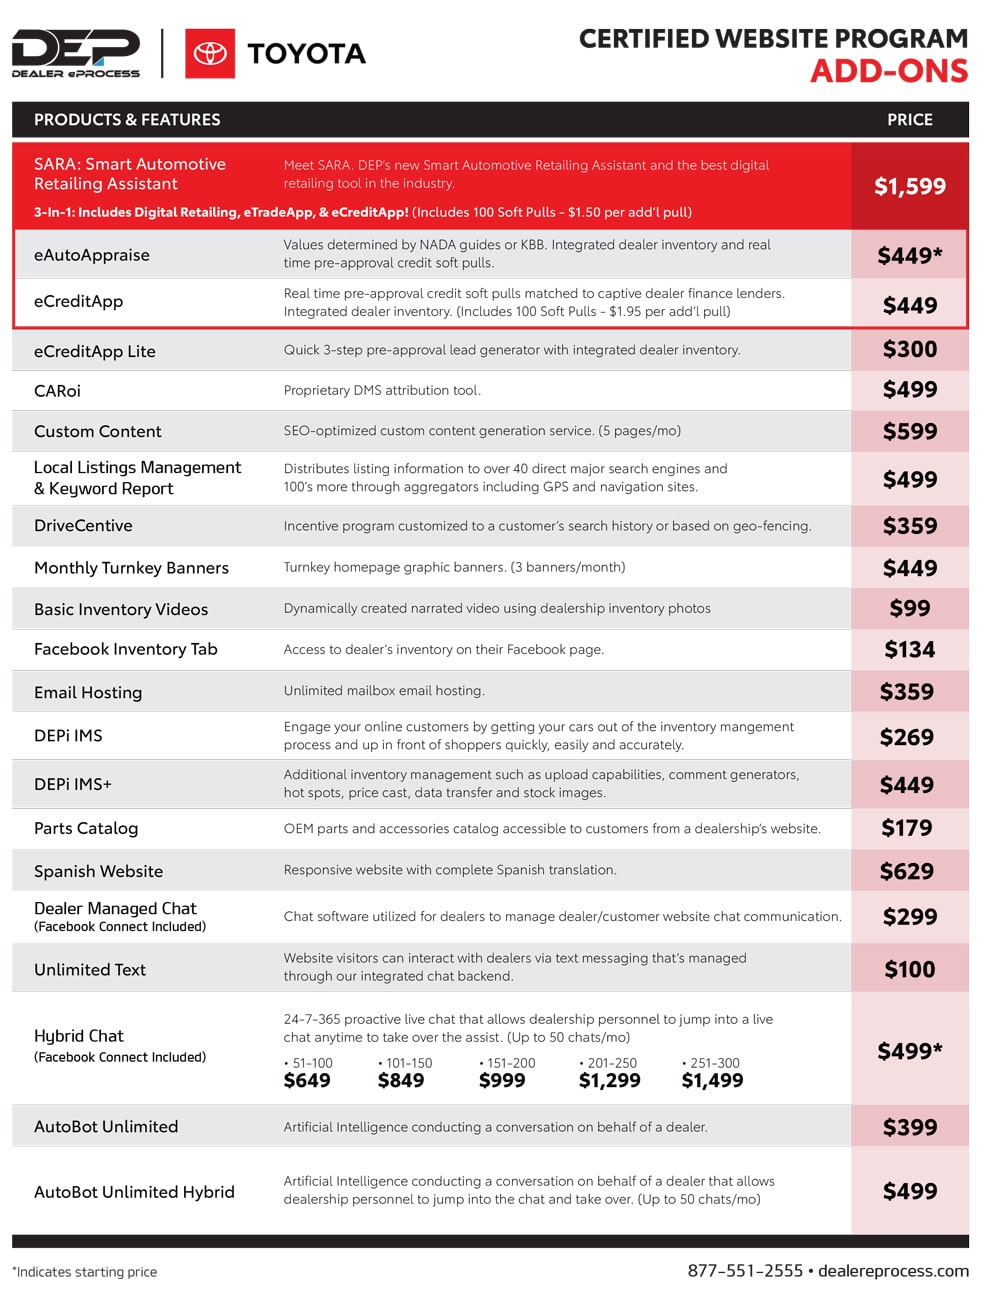 Toyota Website Program price sheet